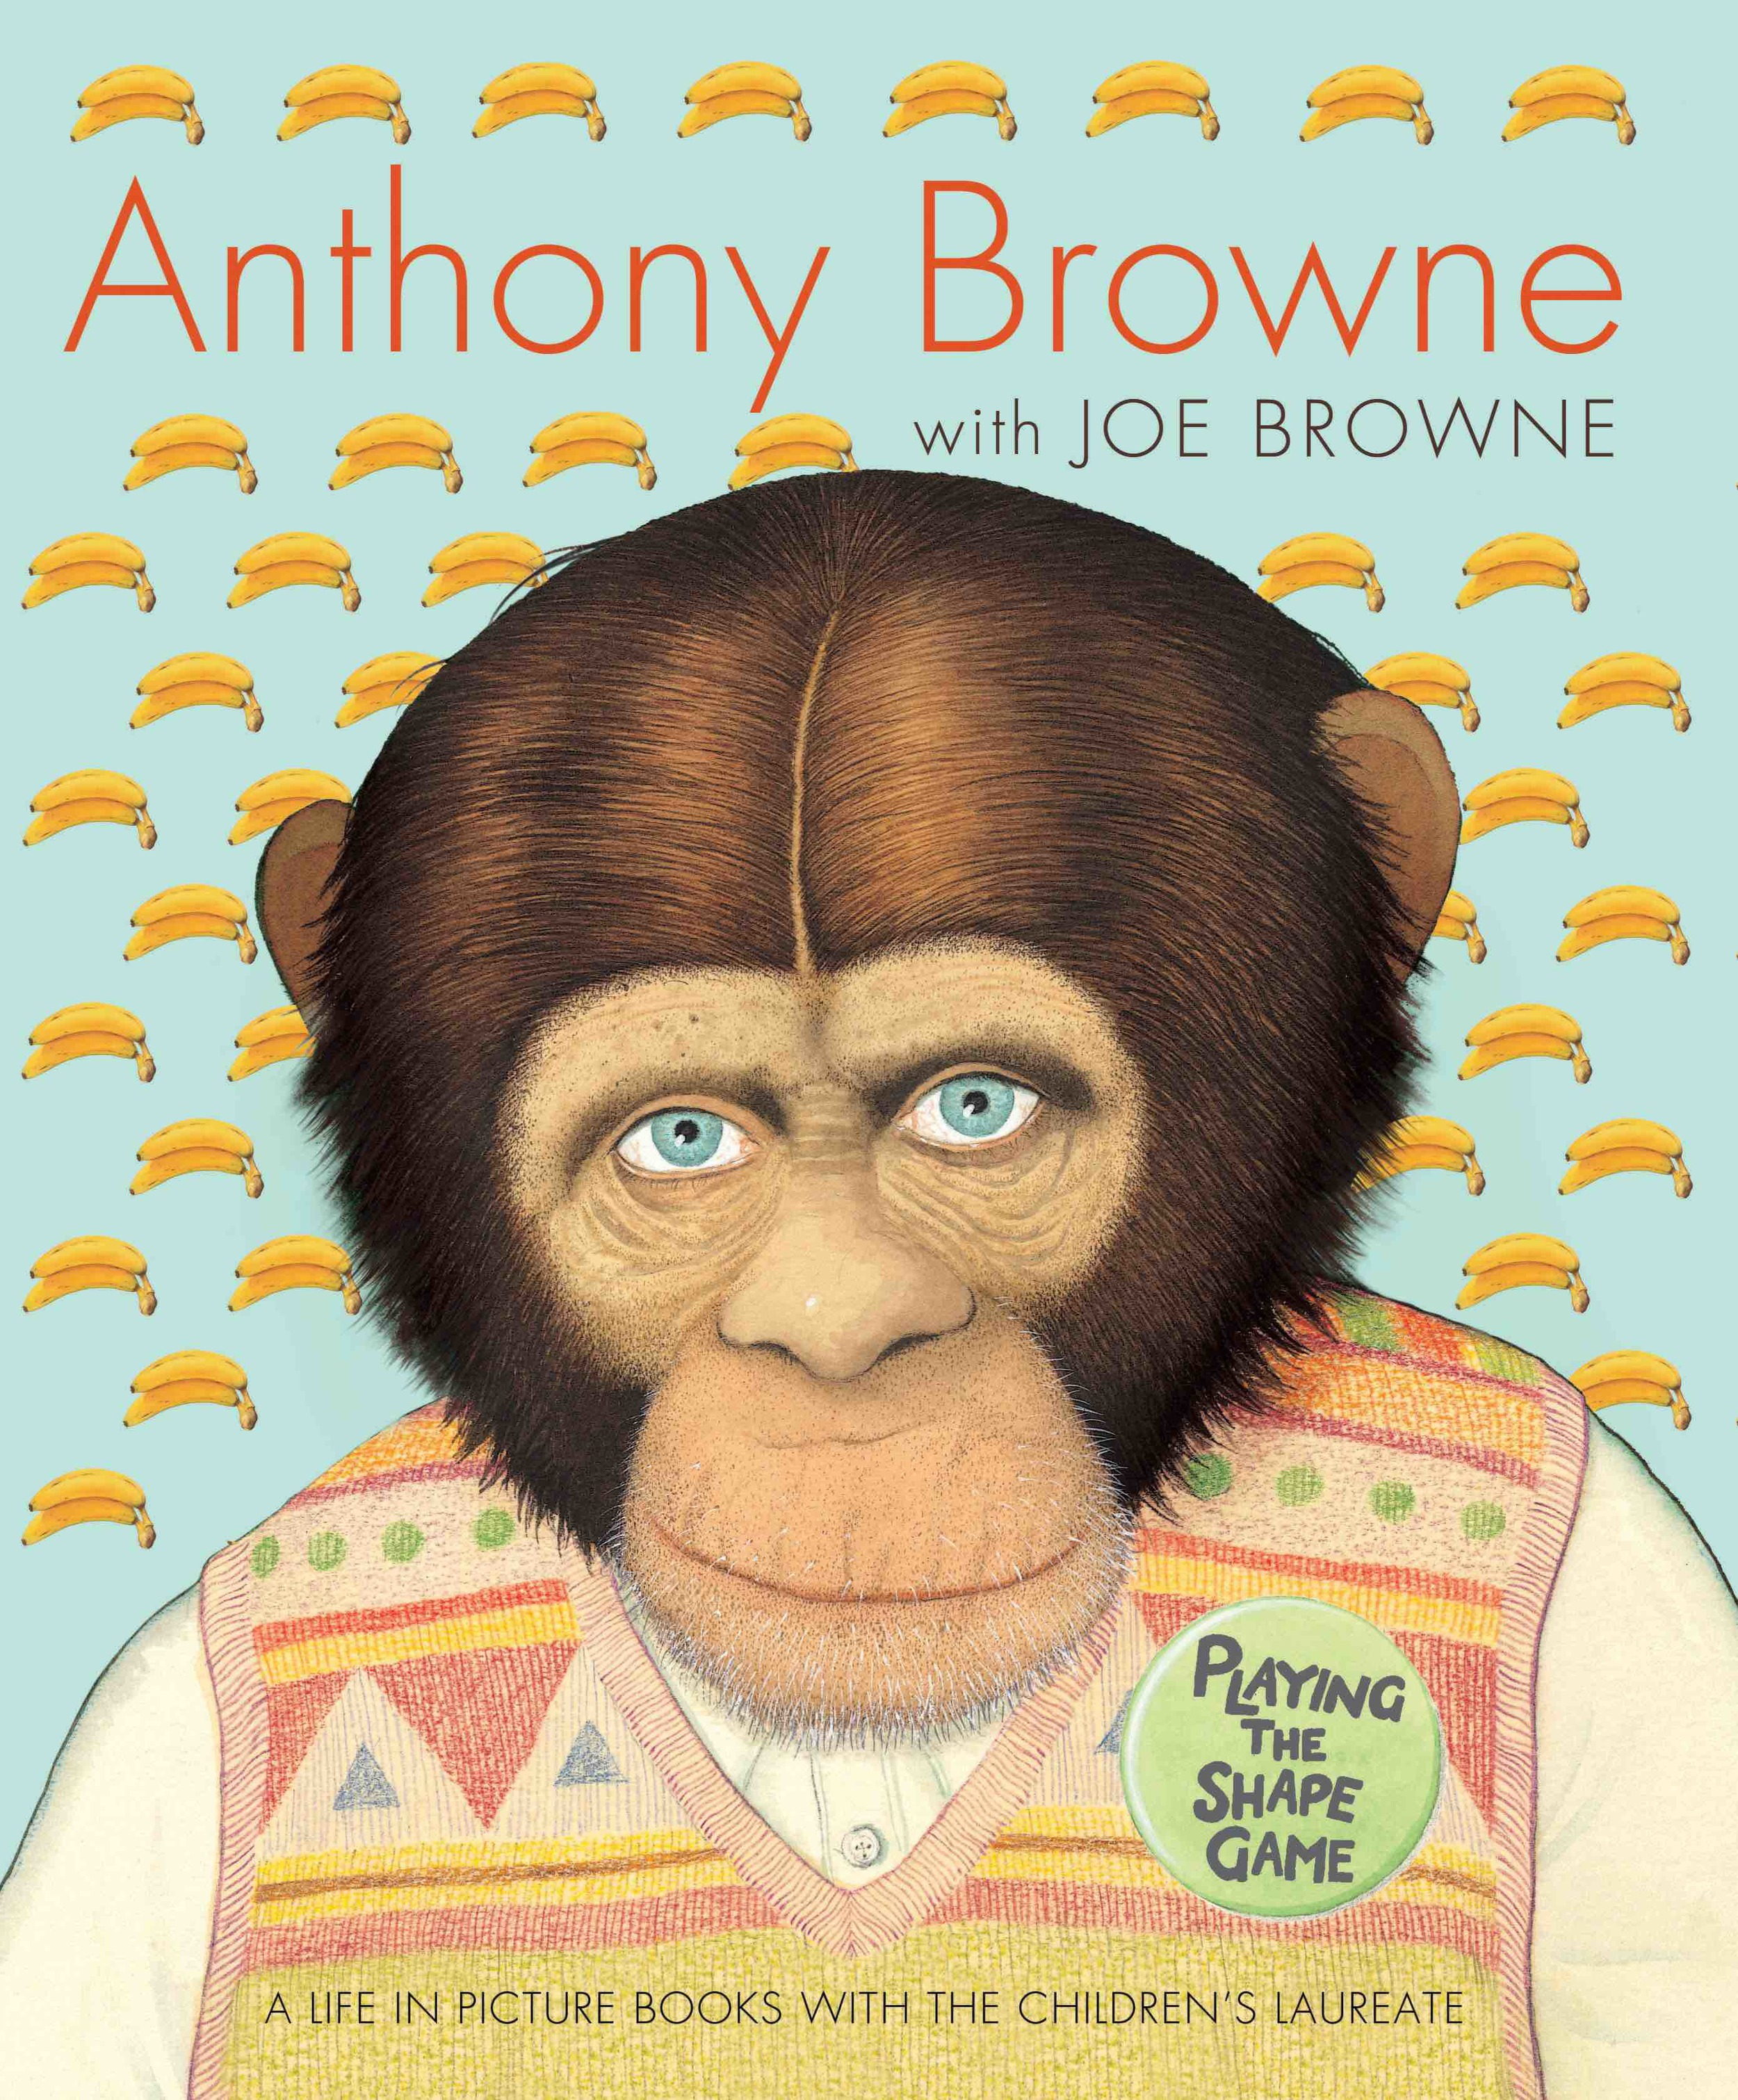 If you want to learn more about Anthony, why not read his biography?